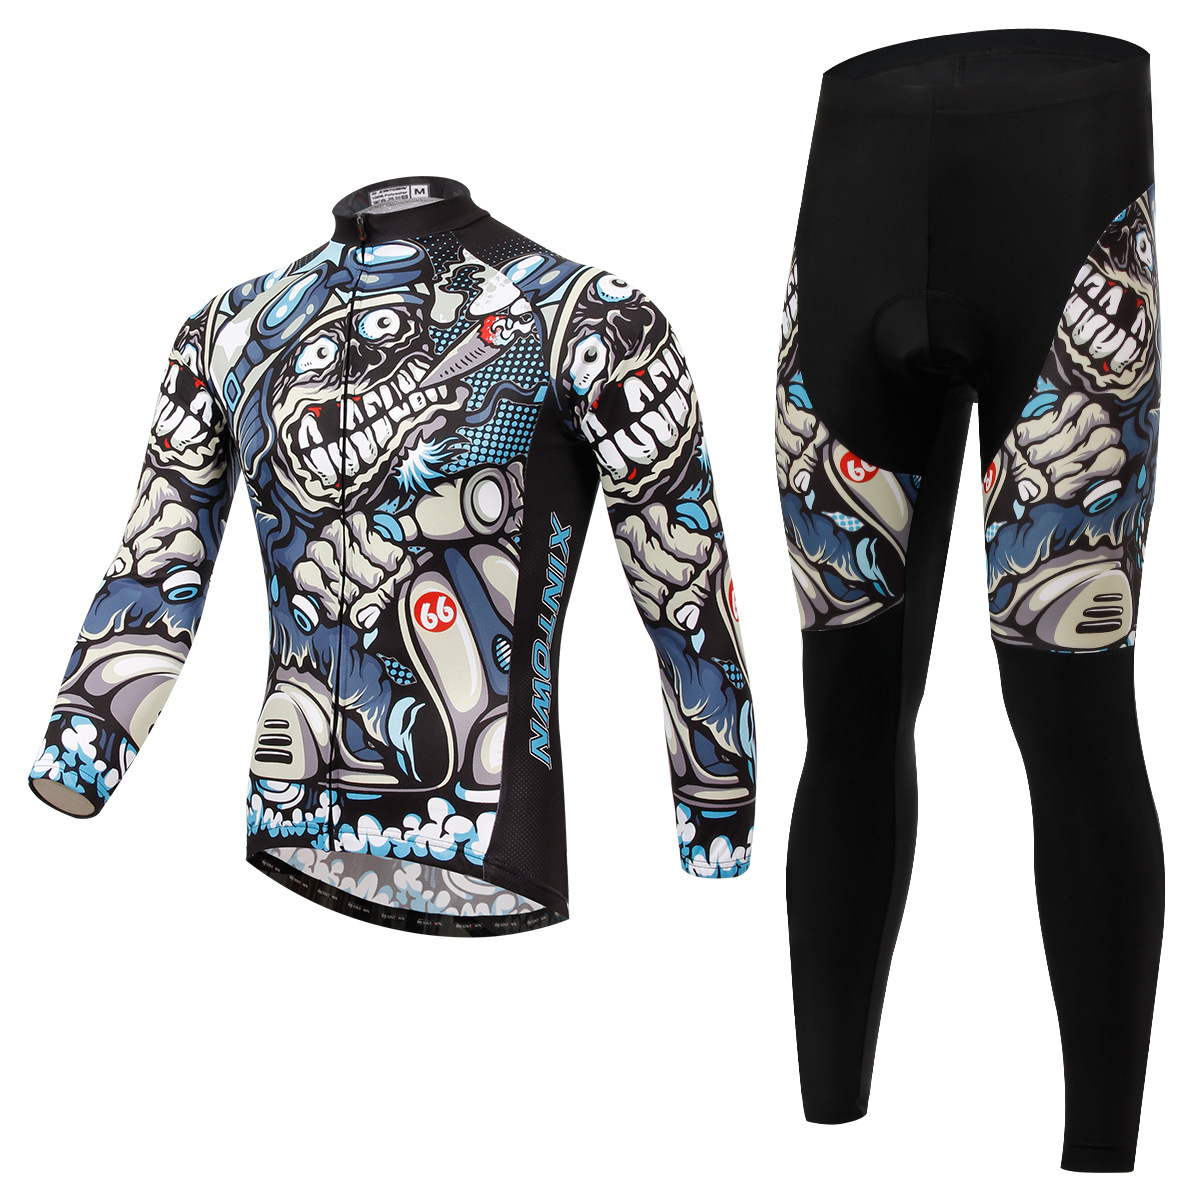 Xintown Stormtrooper cycling suit long sleeve bicycle suit fleece windproof warm functional pants